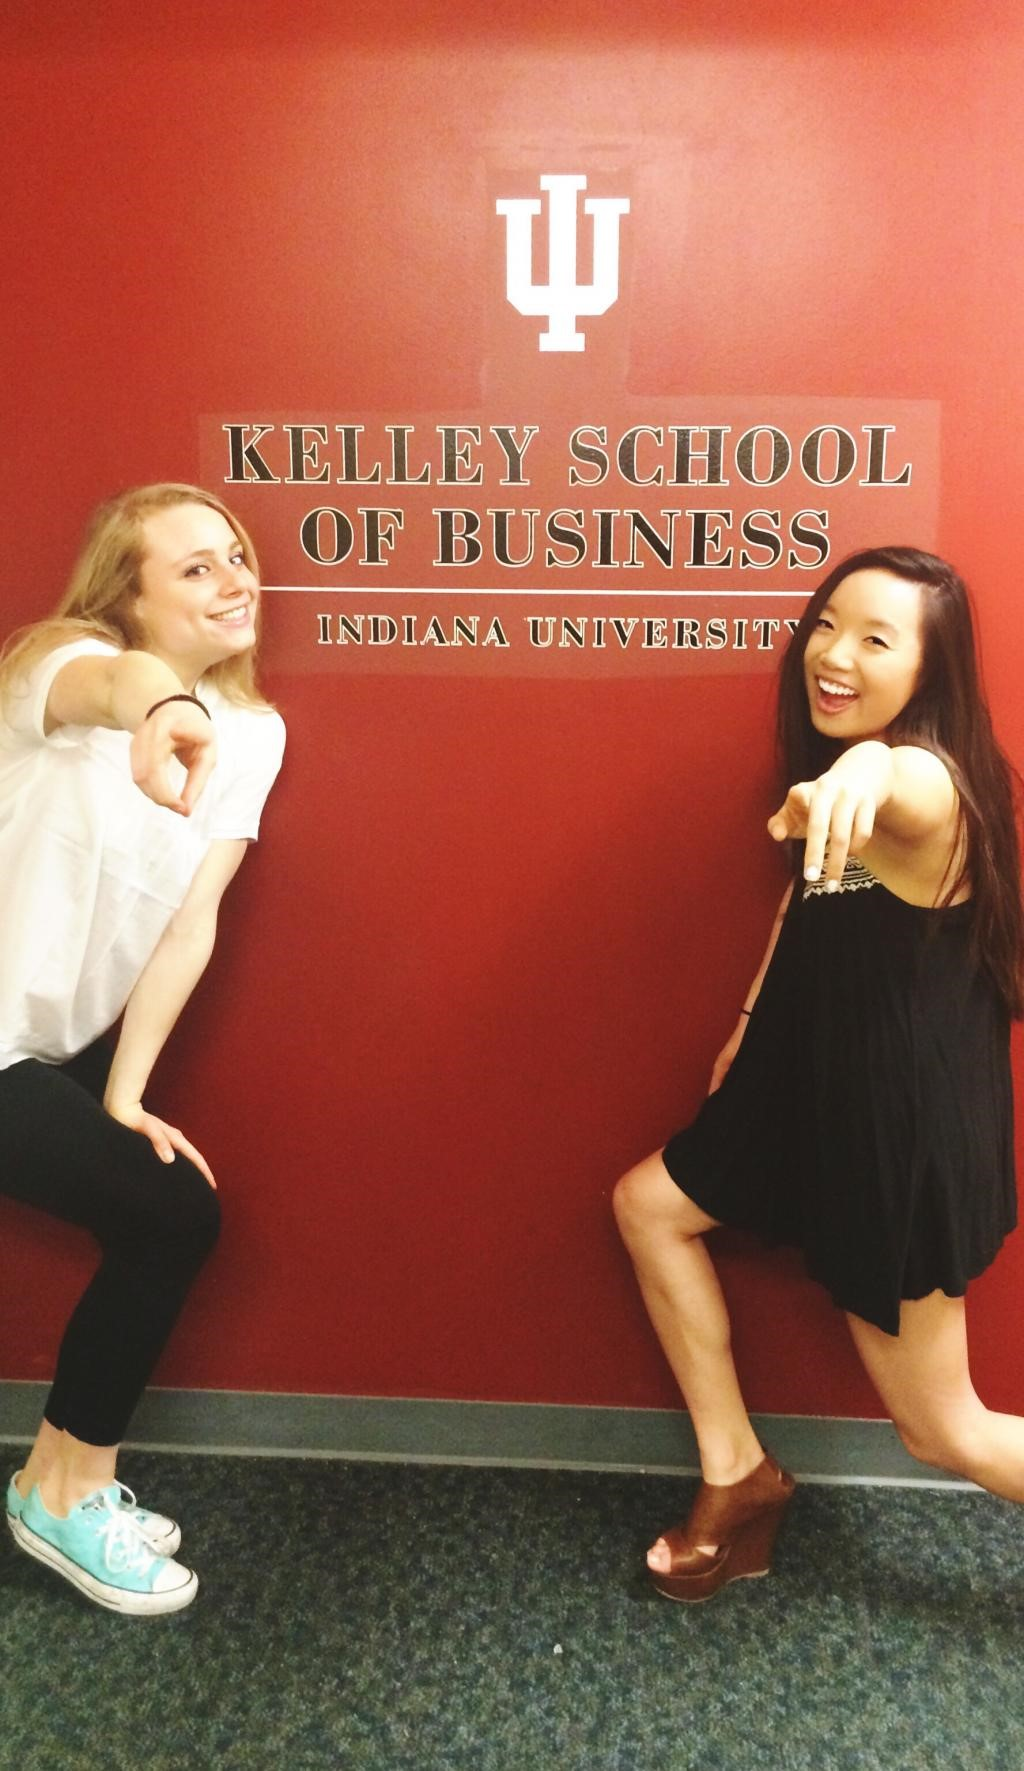 Girls posing infront of Kelly School of Business sign